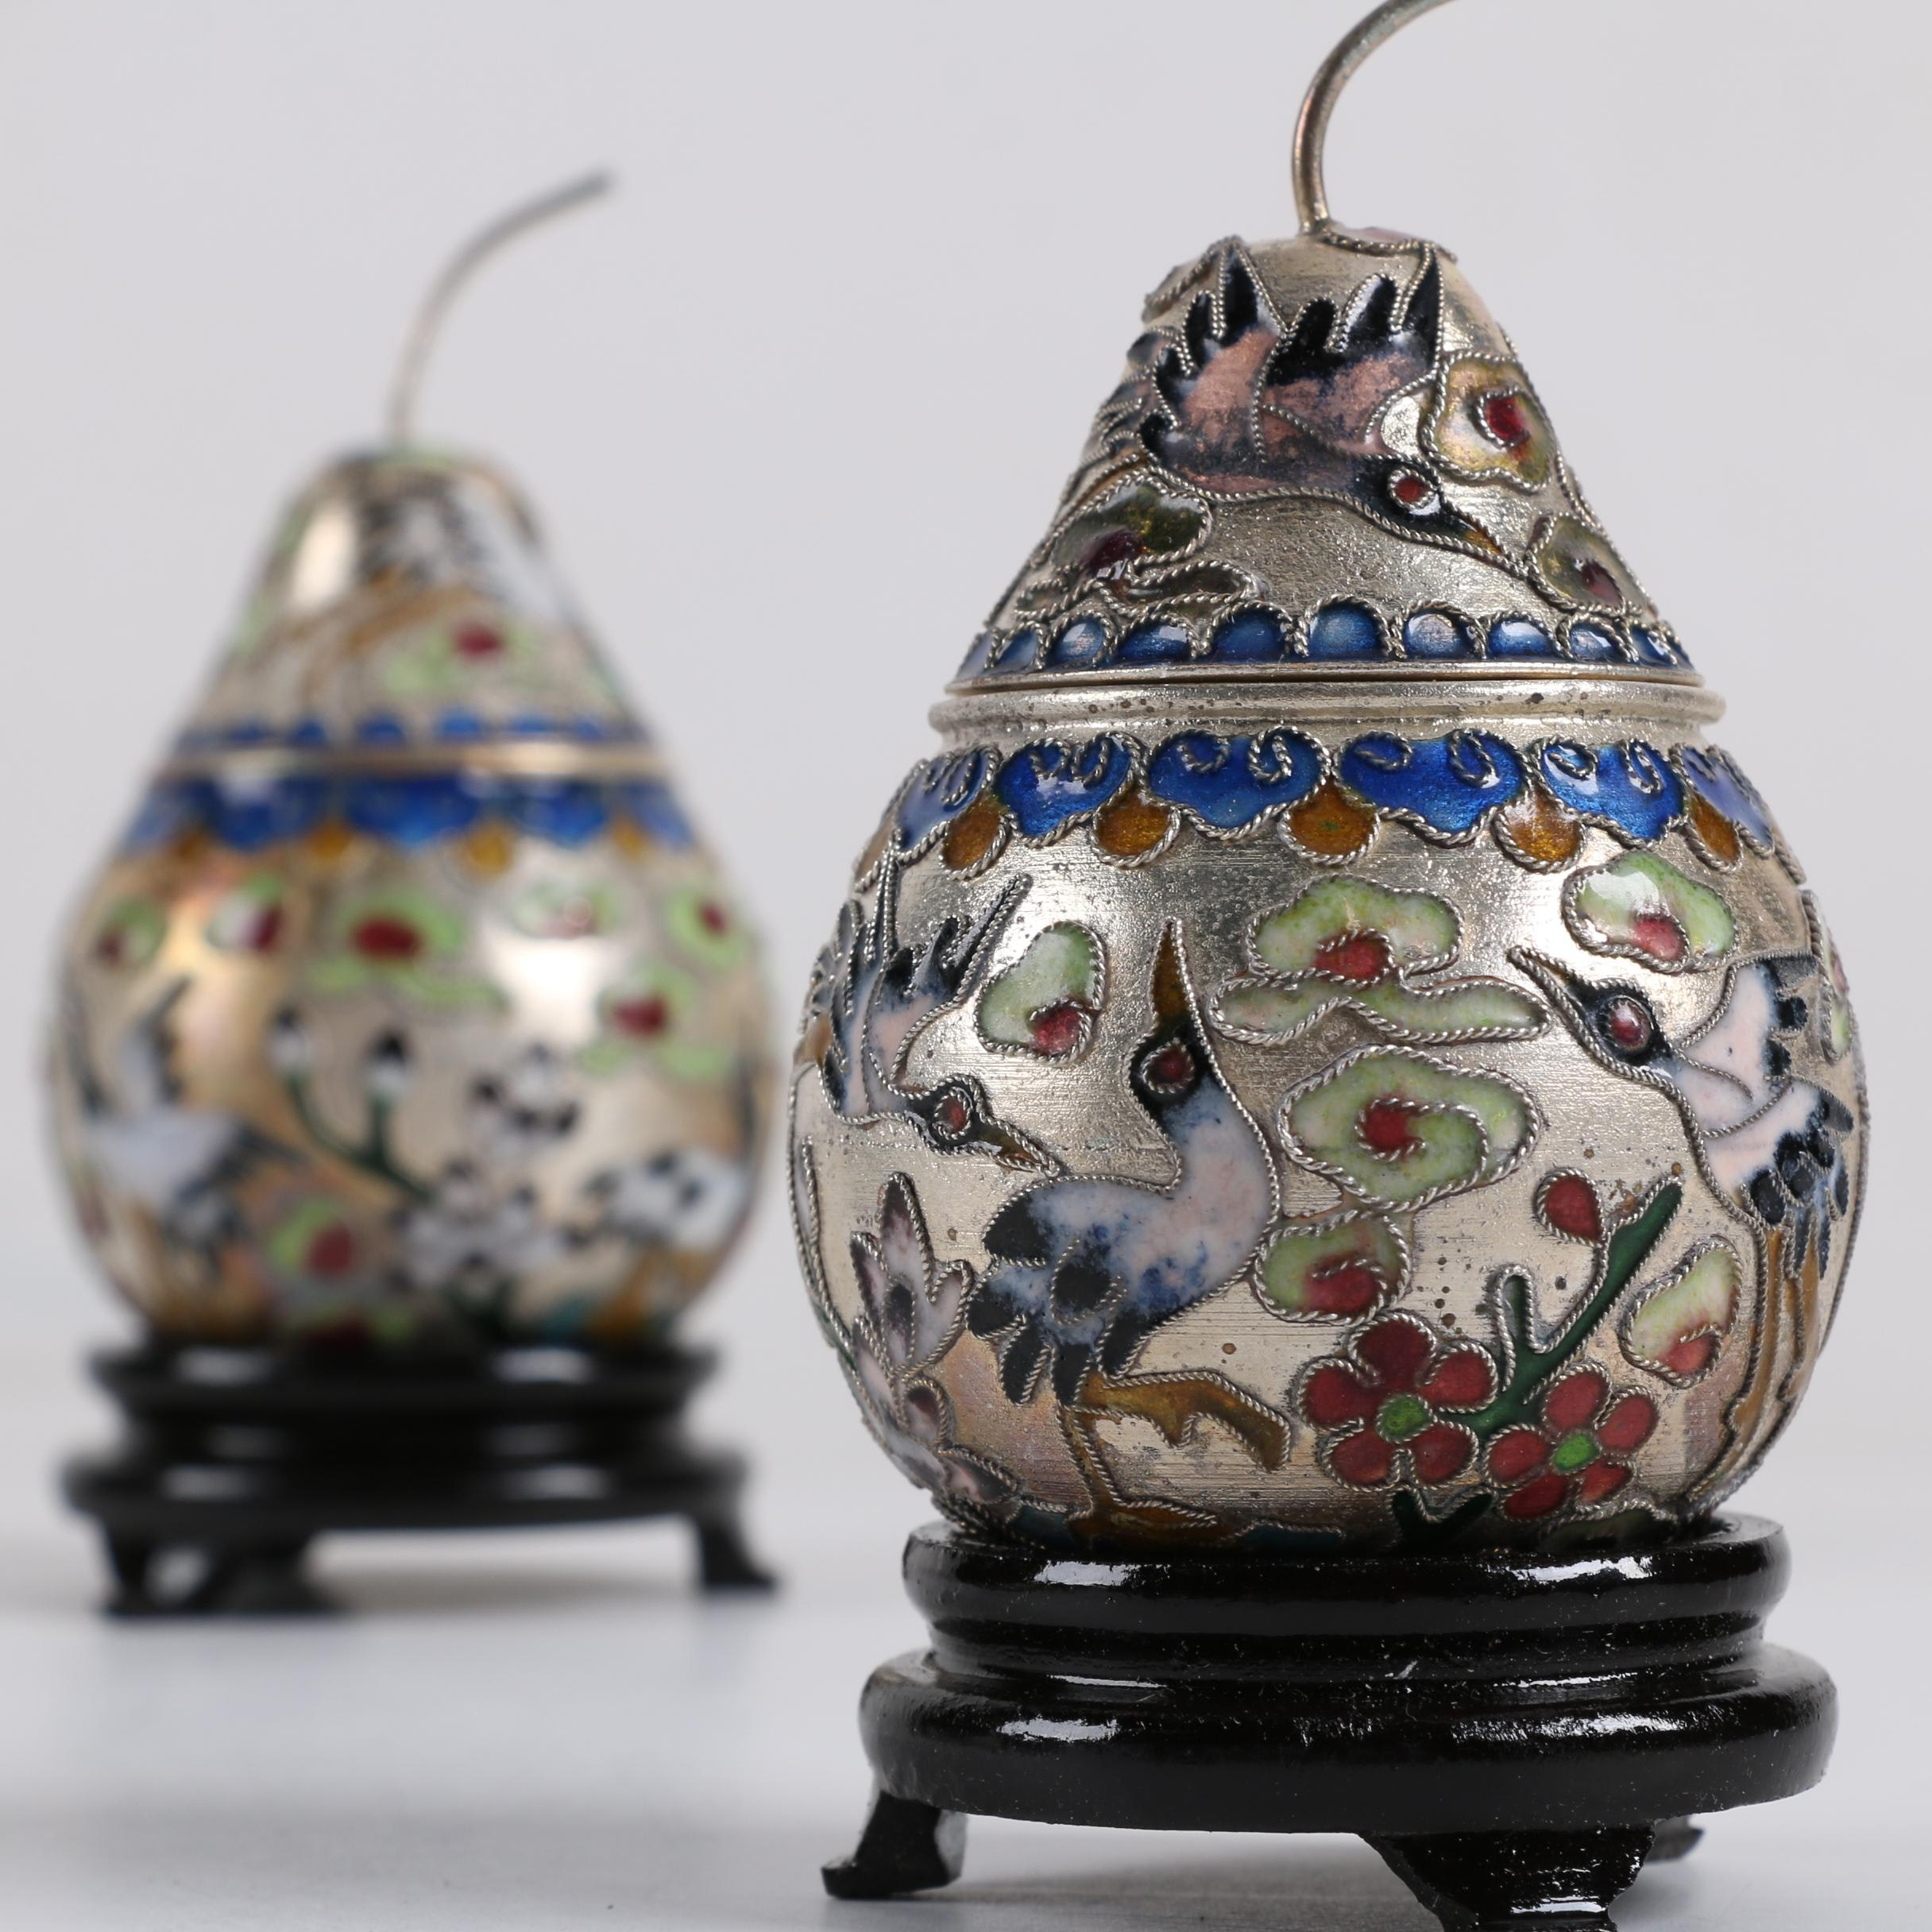 Chinese Cloisonné Pear-Shaped Trinket Boxes with Wood Stands